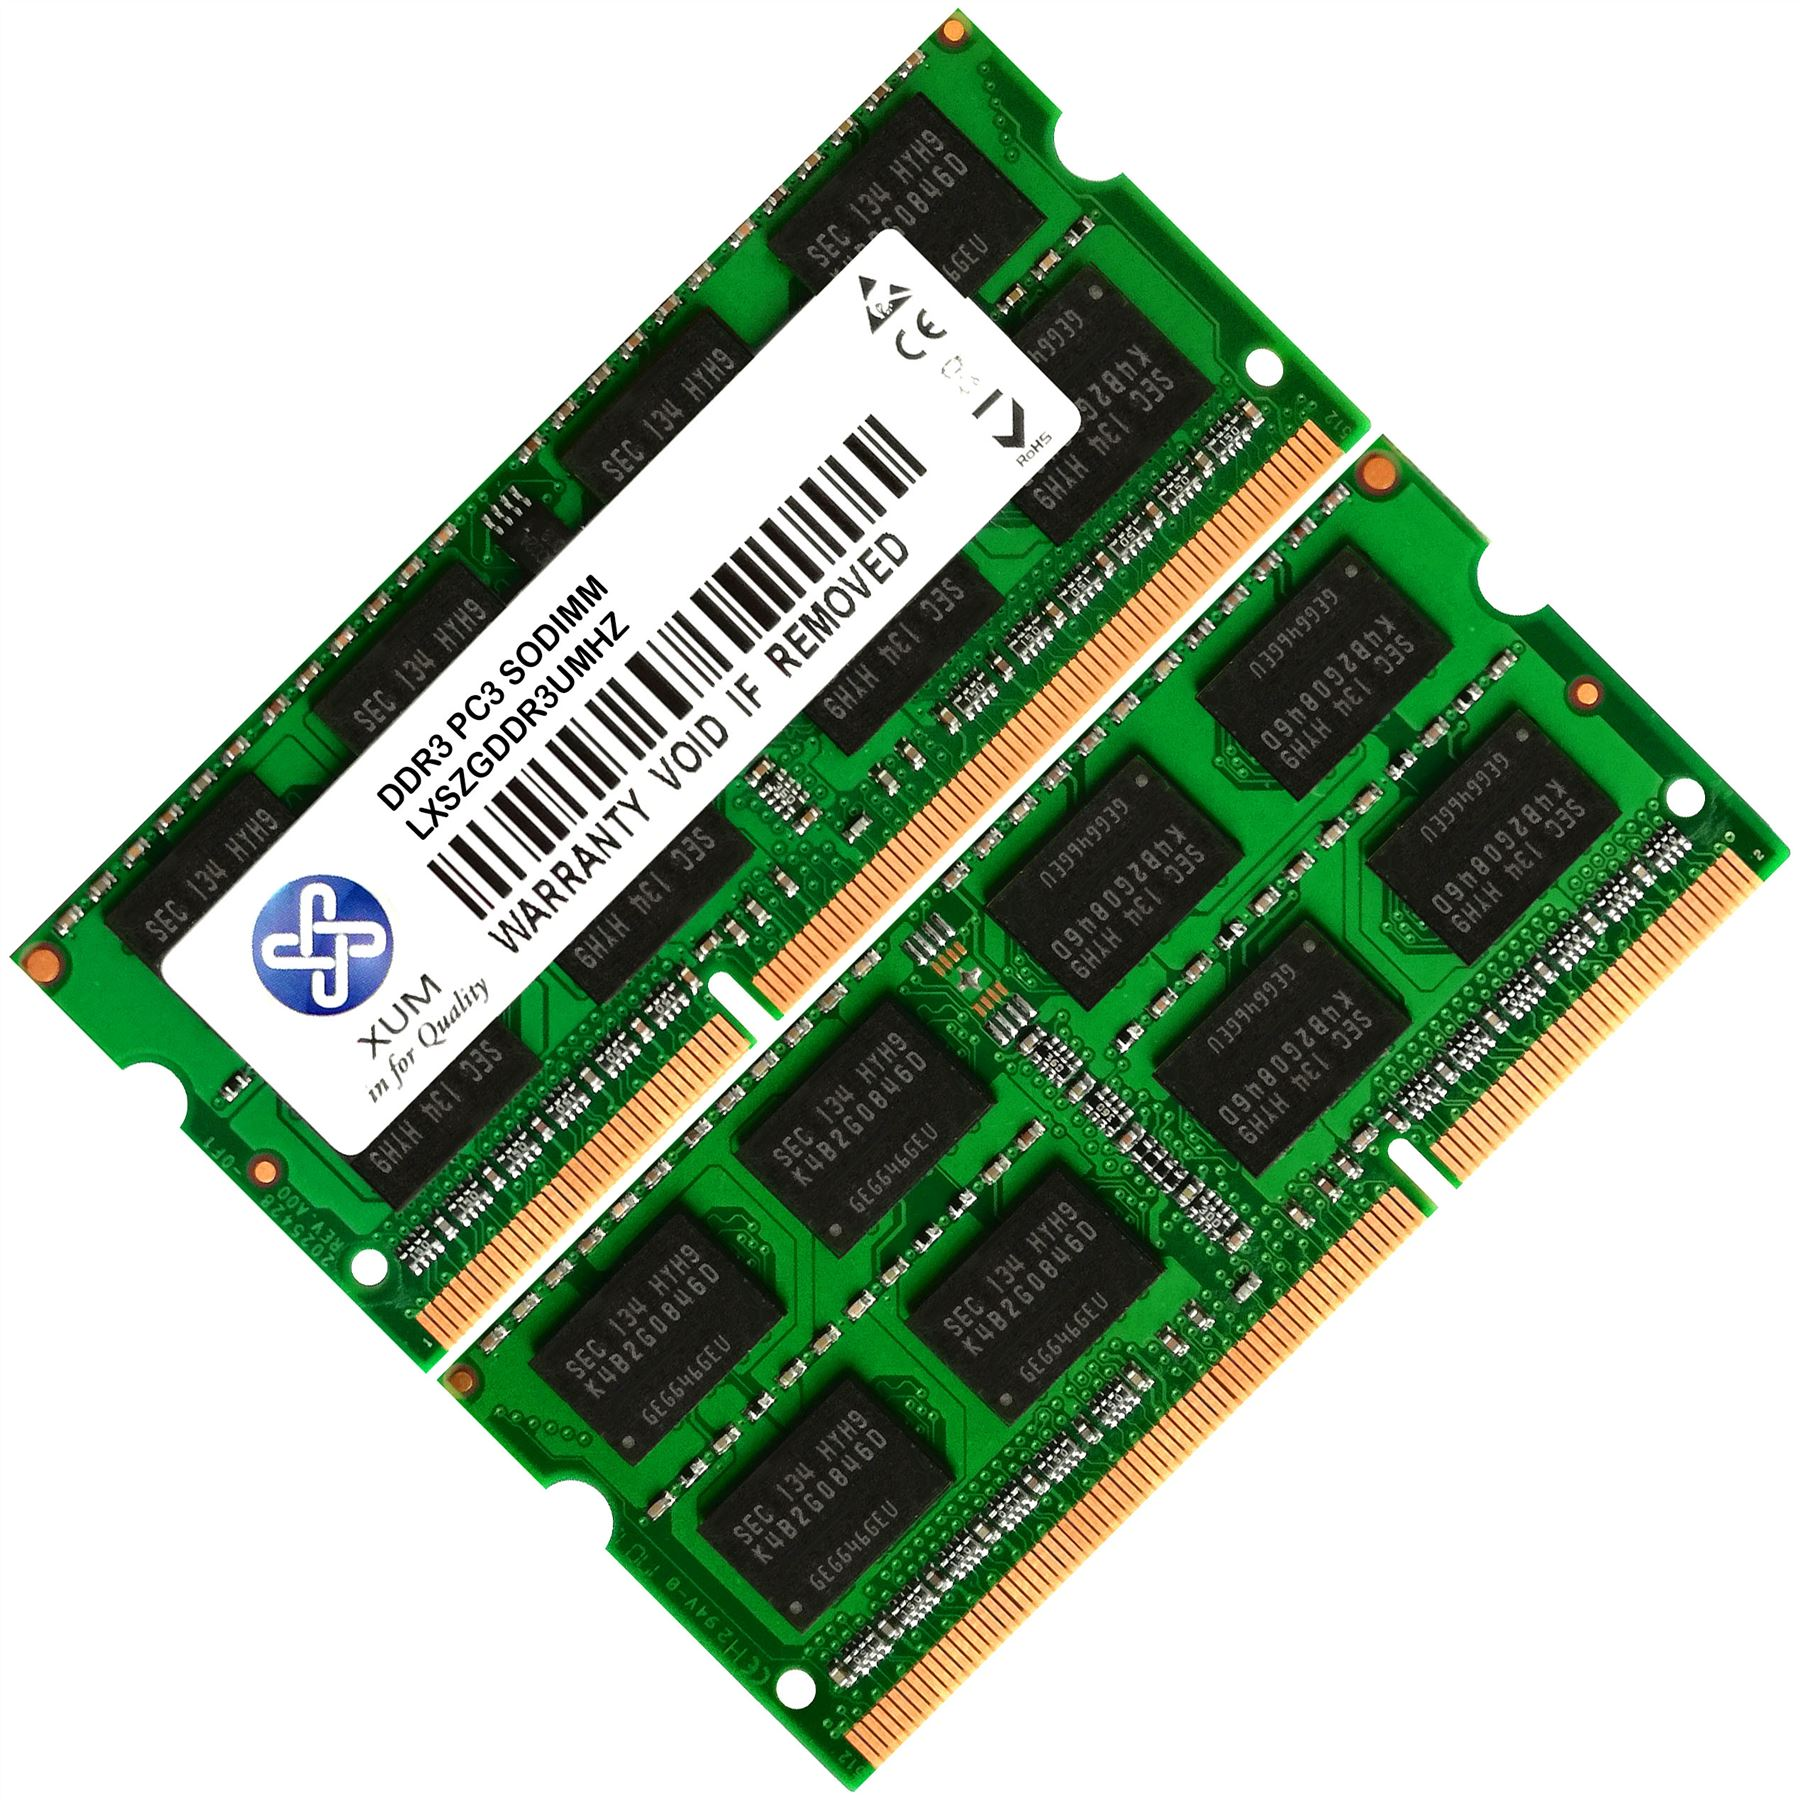 Memoria-Ram-4-Toshiba-Satellite-Laptop-L635-1063X-L635-1069XTW-Nuevo-2x-Lot